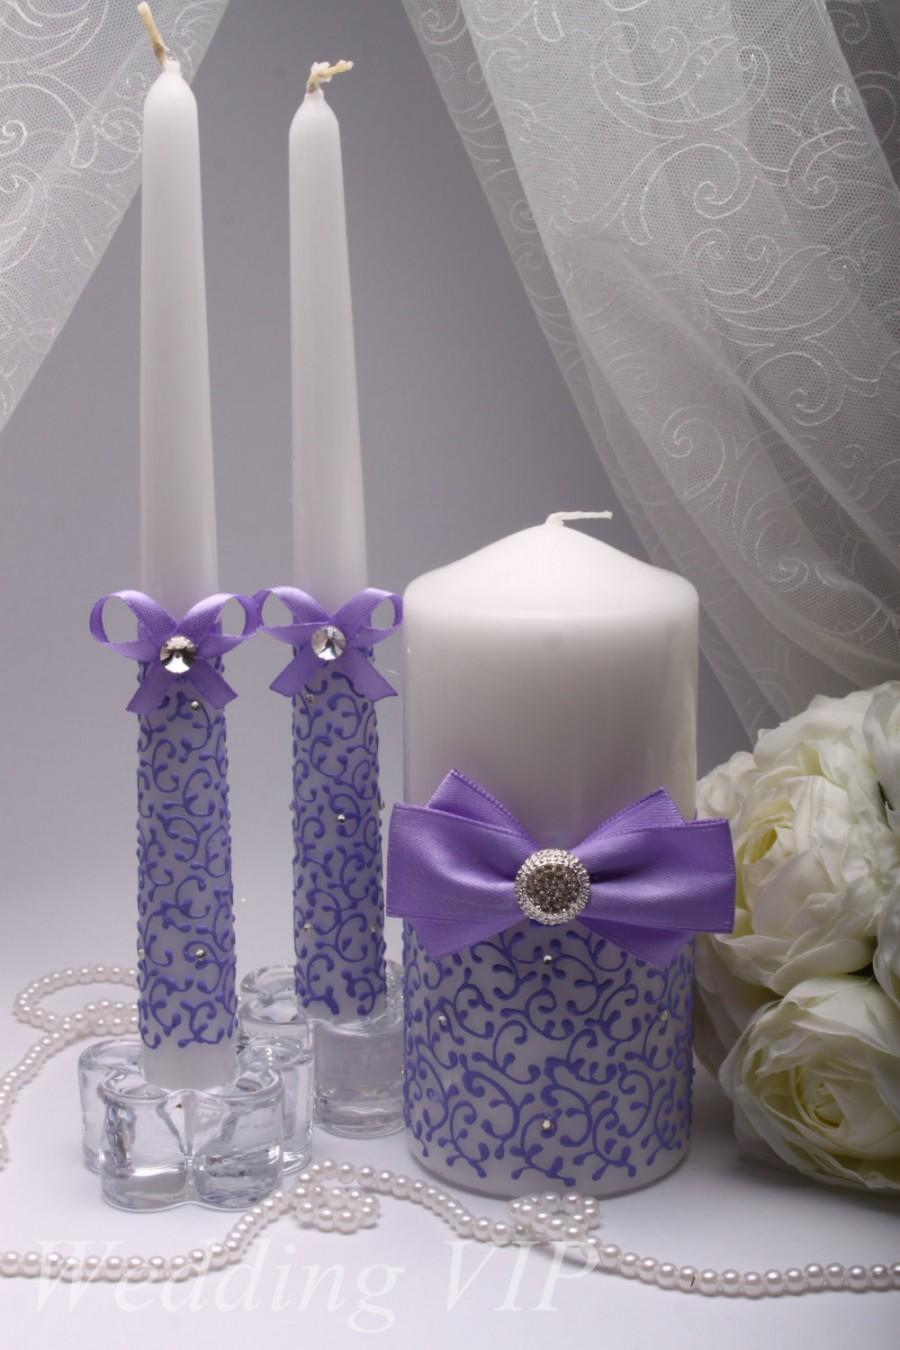 Mariage - Unity candles Lilac-Hand-PAINTED - Unity candle wedding Ceremony unity candles set Wedding Unity Candle personalized unity candle lavender